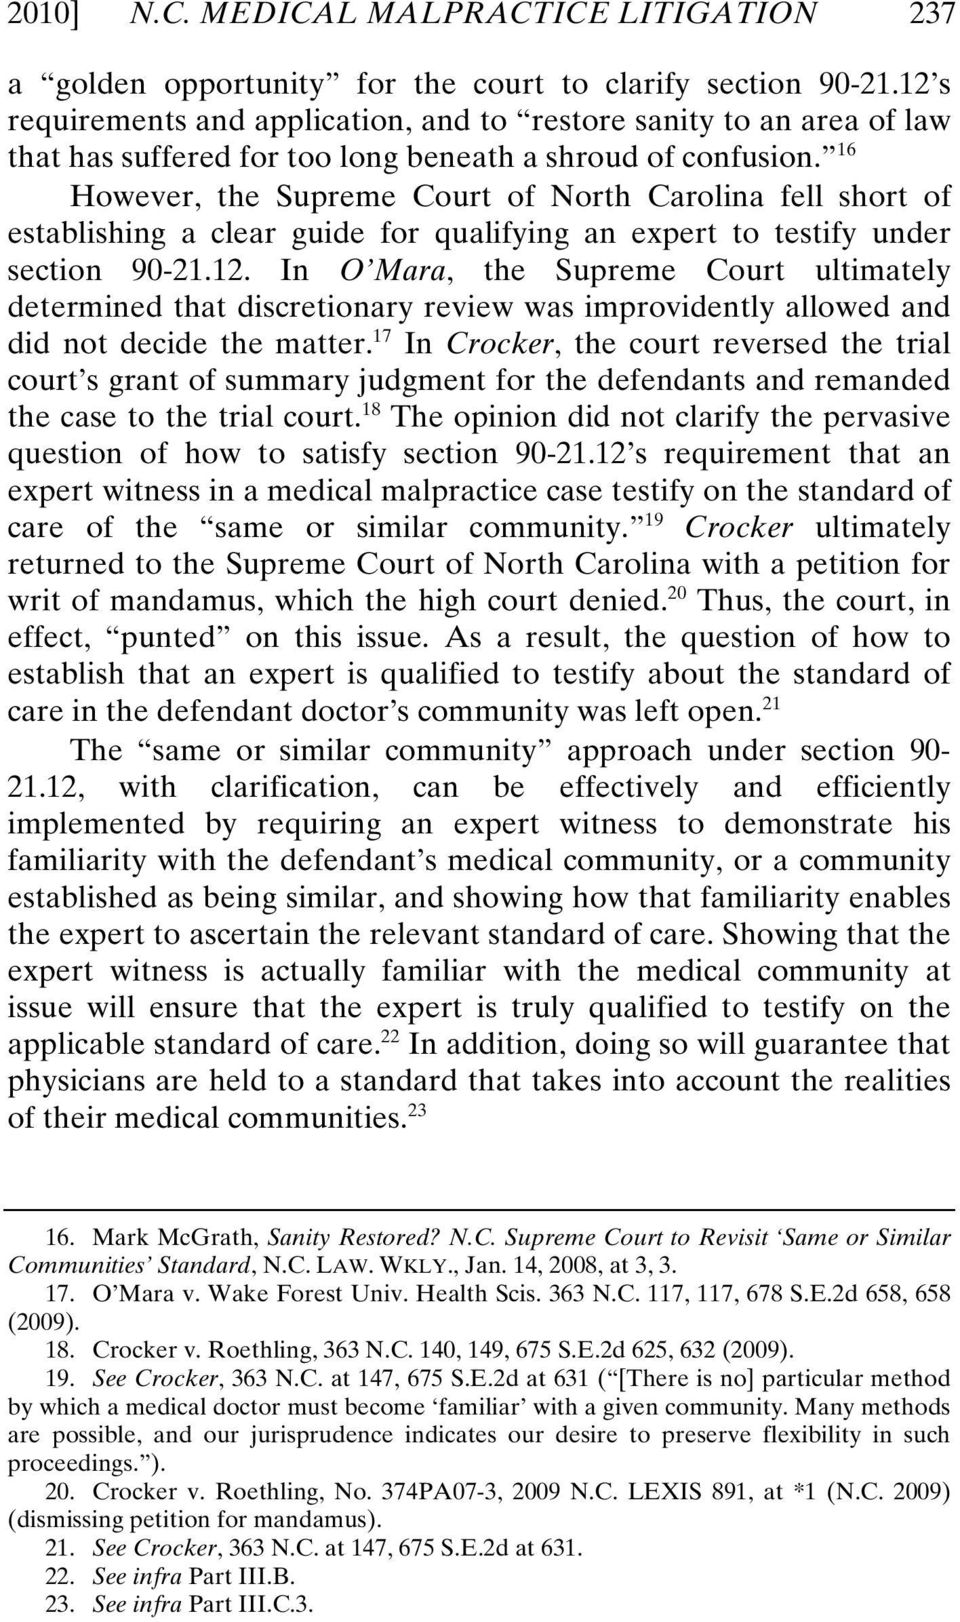 16 However, the Supreme Court of North Carolina fell short of establishing a clear guide for qualifying an expert to testify under section 90-21.12.